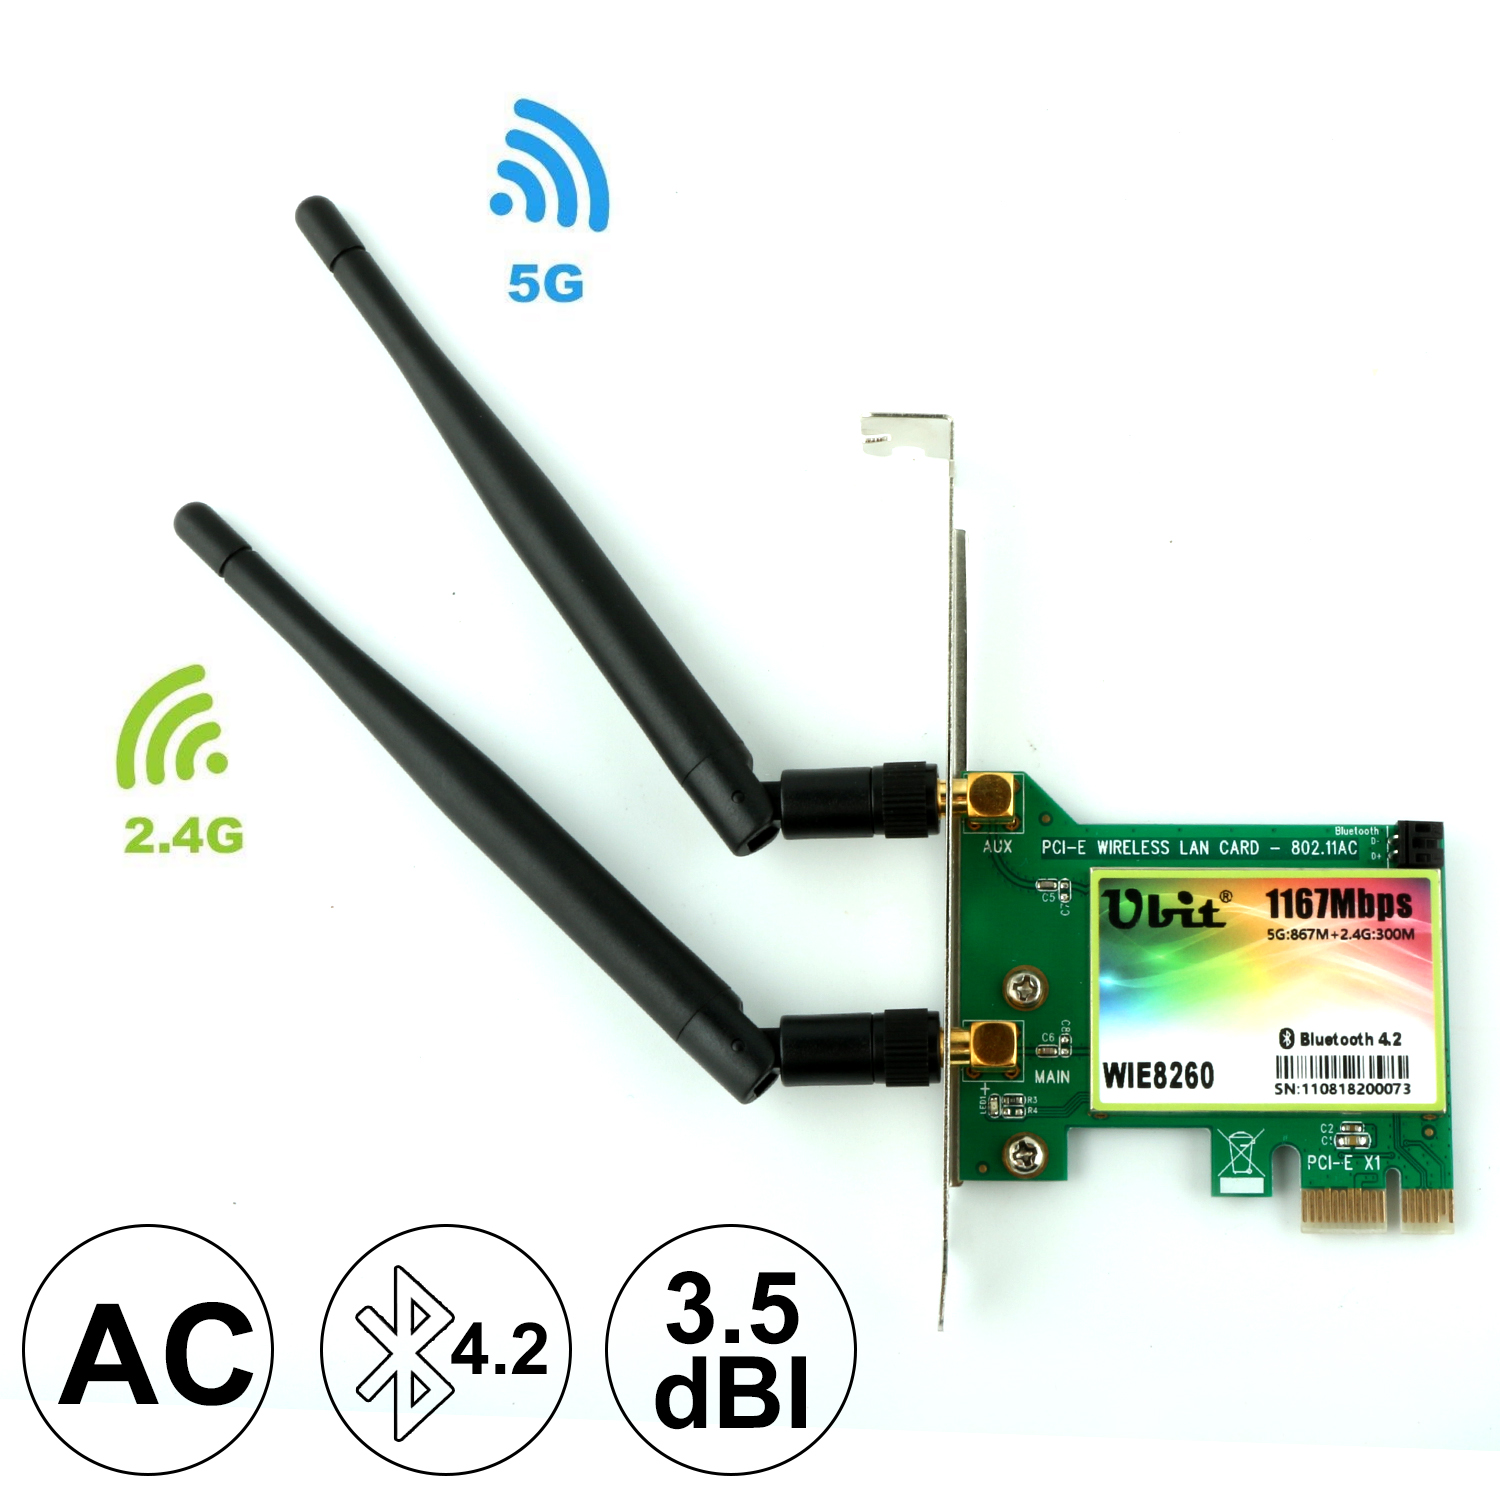 Ubit AC 1167Mbps 8260 Bluetooth 4.2 Wireless Network Card, 802.11 Wifi Card ,5Ghz-867Mbps/2.4Ghz-300Mbps Network Card For PC(China)